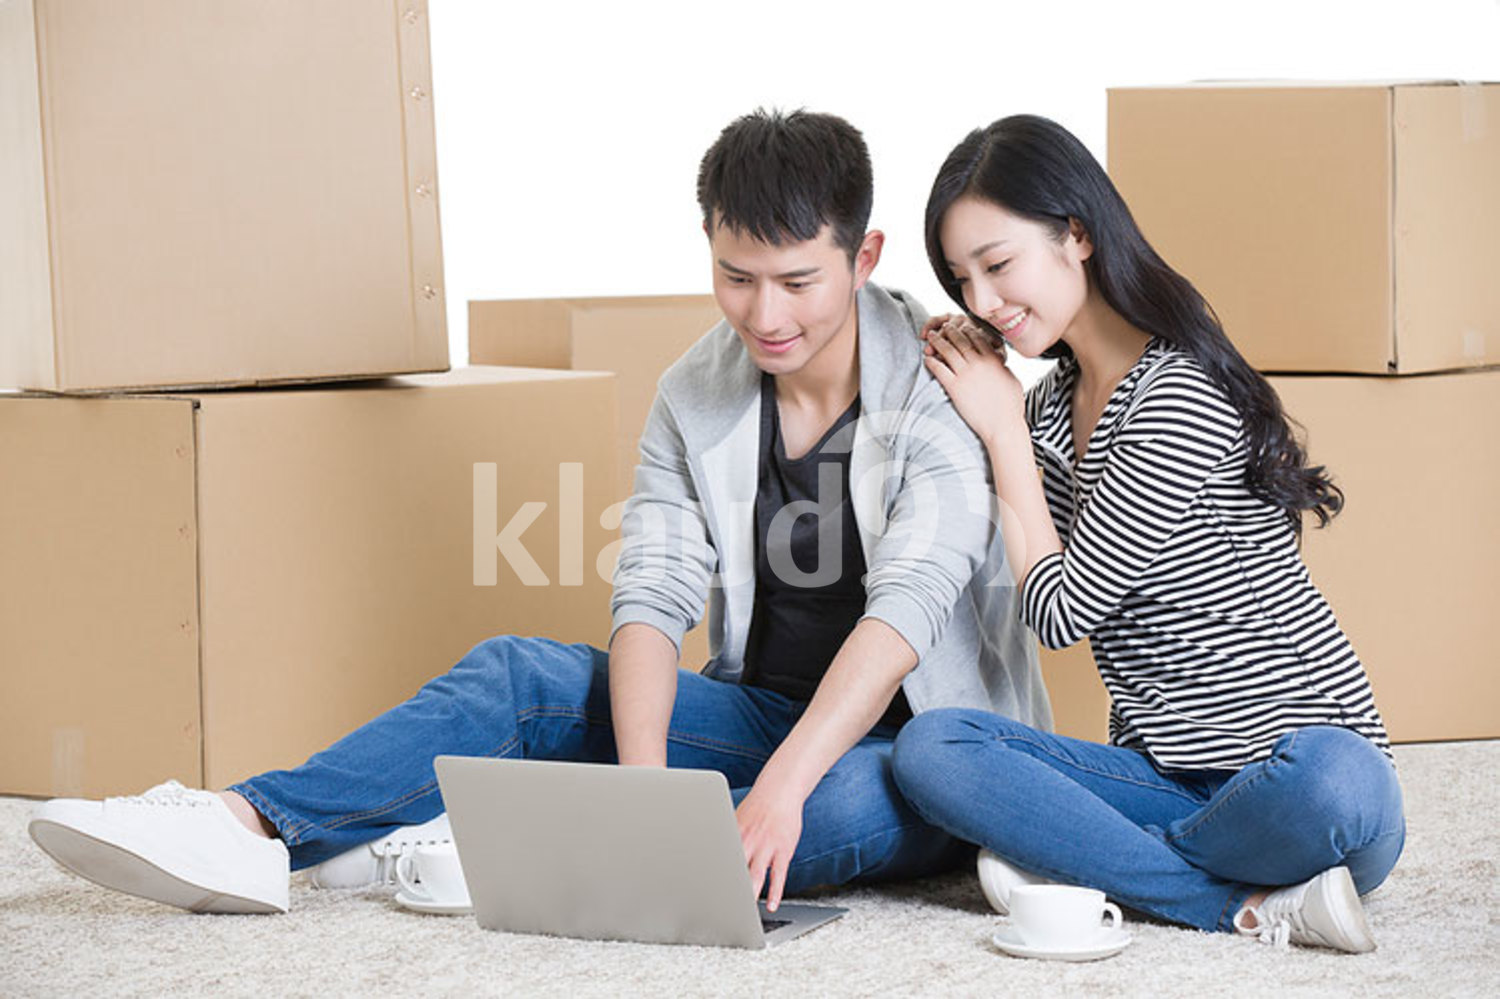 Young Chinese couple using laptop on floor